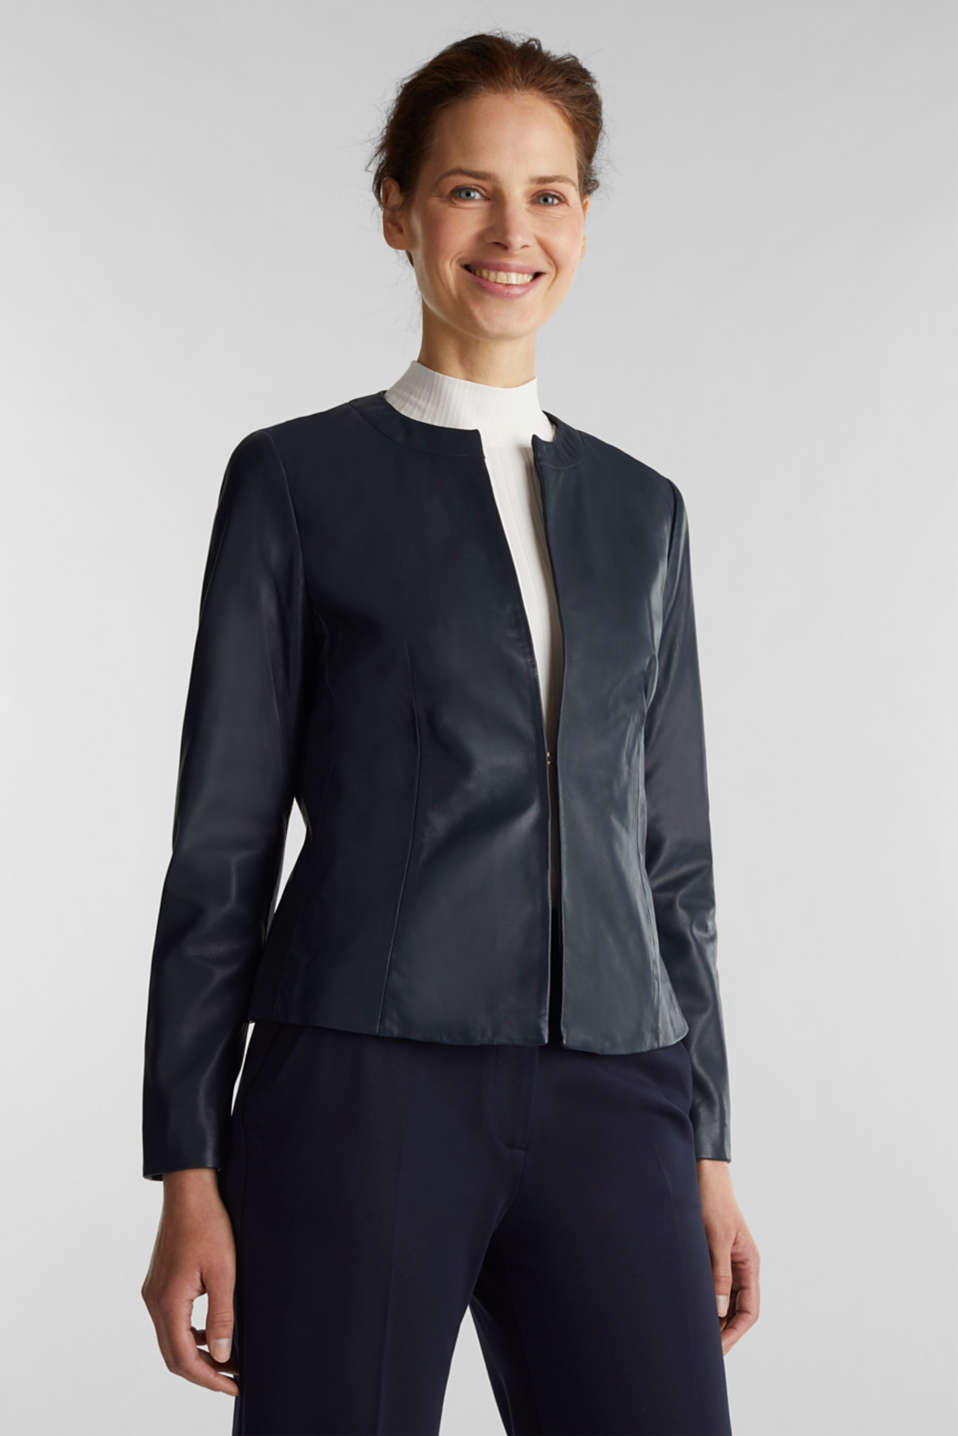 Esprit - Feminine, fitted jacket made of leather